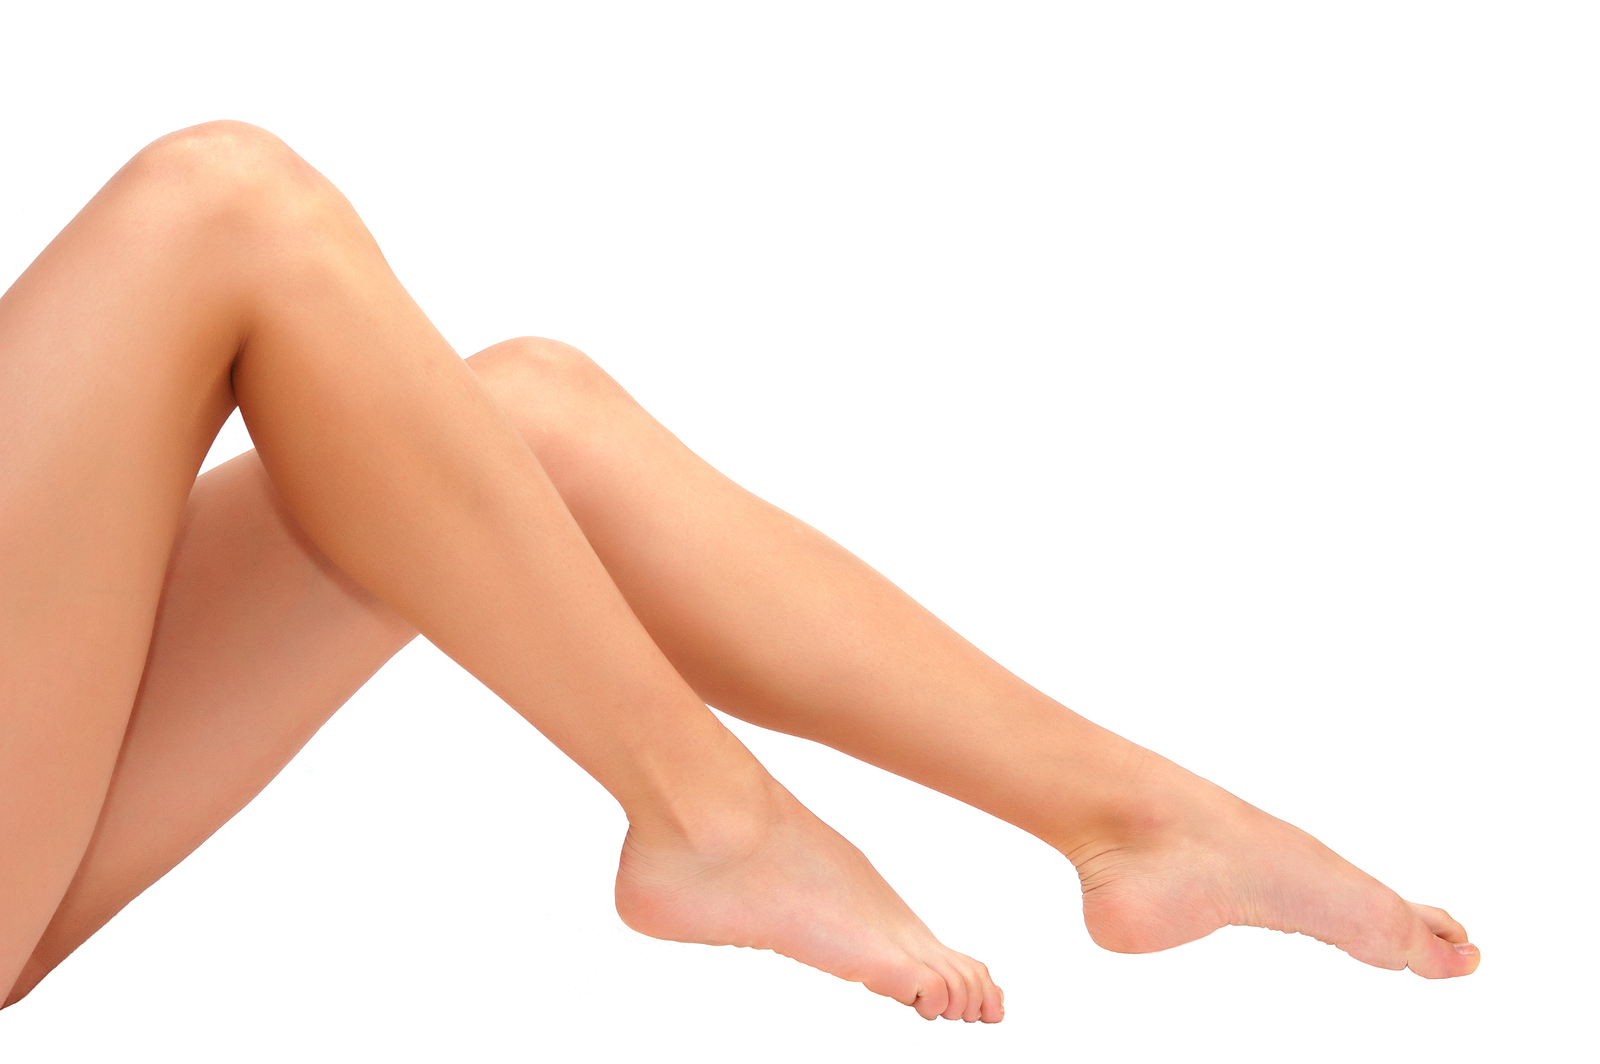 Leg Hair Removal - Short on time, but have to look great? Smooth, sexy legs for life are a few treatments away. Stop dragging sharp razors across your skin and end the pains of yanking hairs from the follicle with hot wax. Laser treatment provides a brand new smooth for a brand new you.End painful waxing, nicks, irritated skin and embarrassing stubble forever. Zip up skirts and pull on shorts to show off your beautifully smooth legs year round. Laser treatment will put an end to stubble and pepper spots left after shaving. It's the secret to keep your legs bare and your skin soft and flawless!